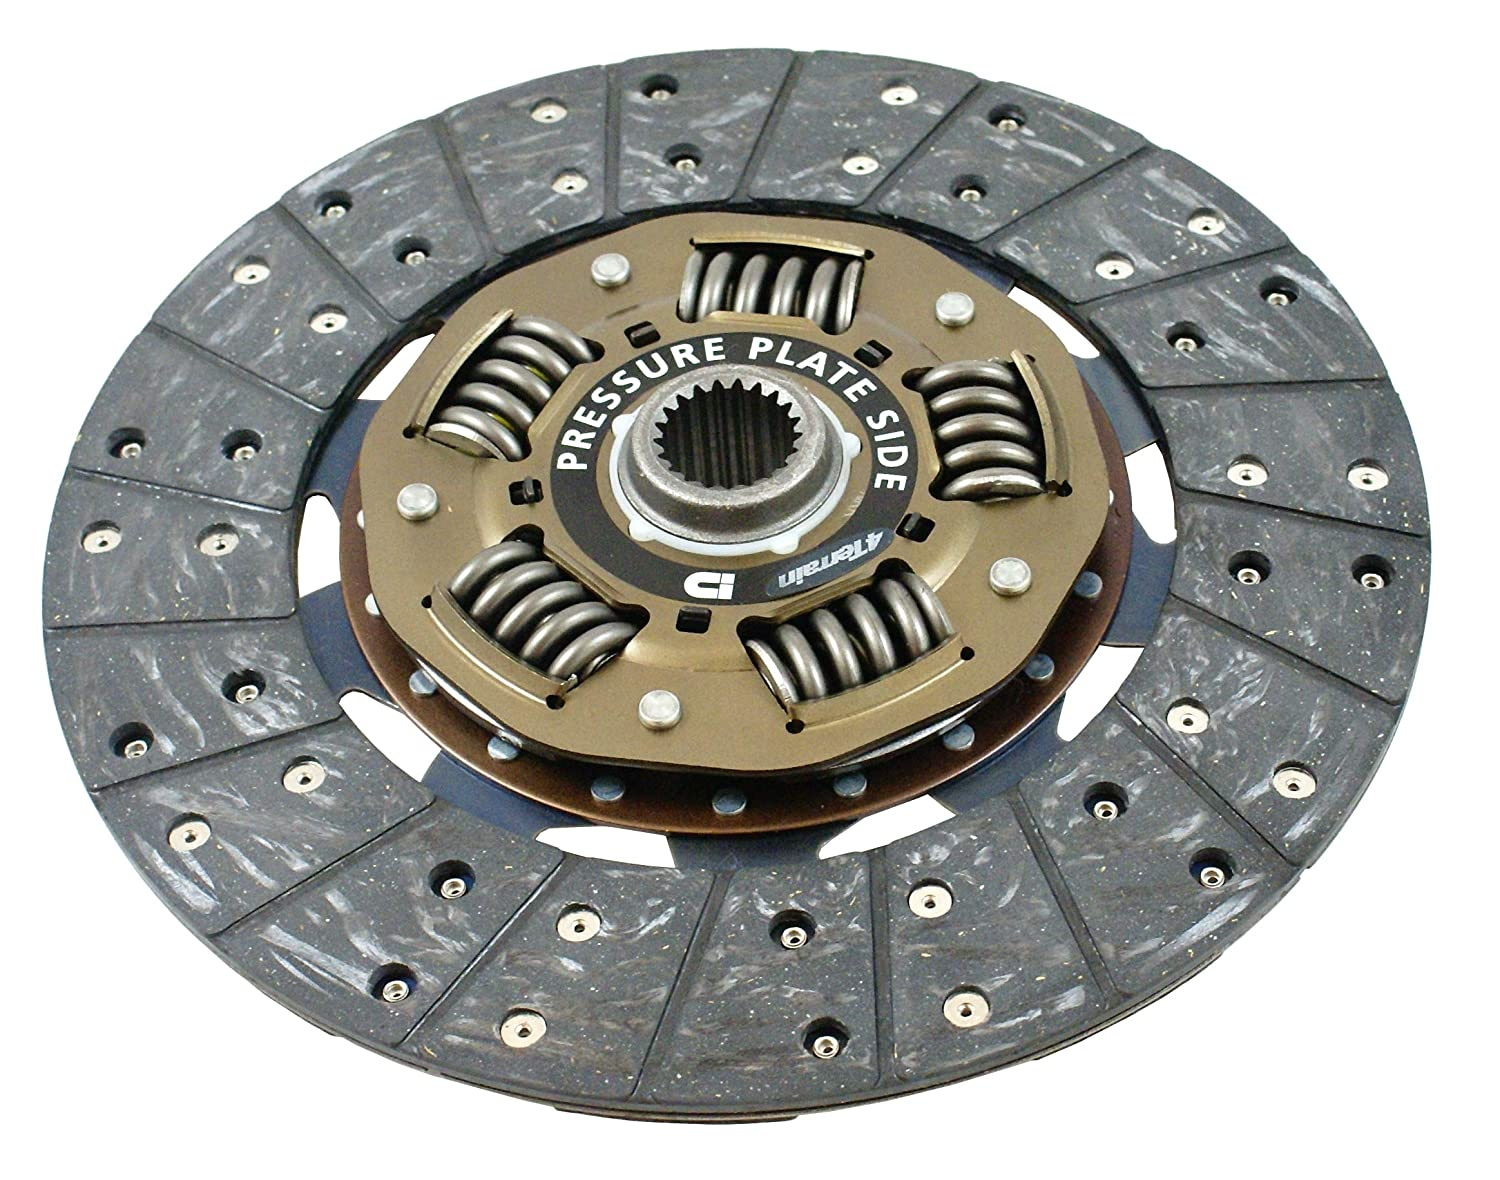 4Terrain Ultimate Premium Clutch Kit | ER2 Heavy Duty Cover Assembly | Dual Friction, High Torque, Clutch Plate | Release bearing | Clutch Alignment Tool ...